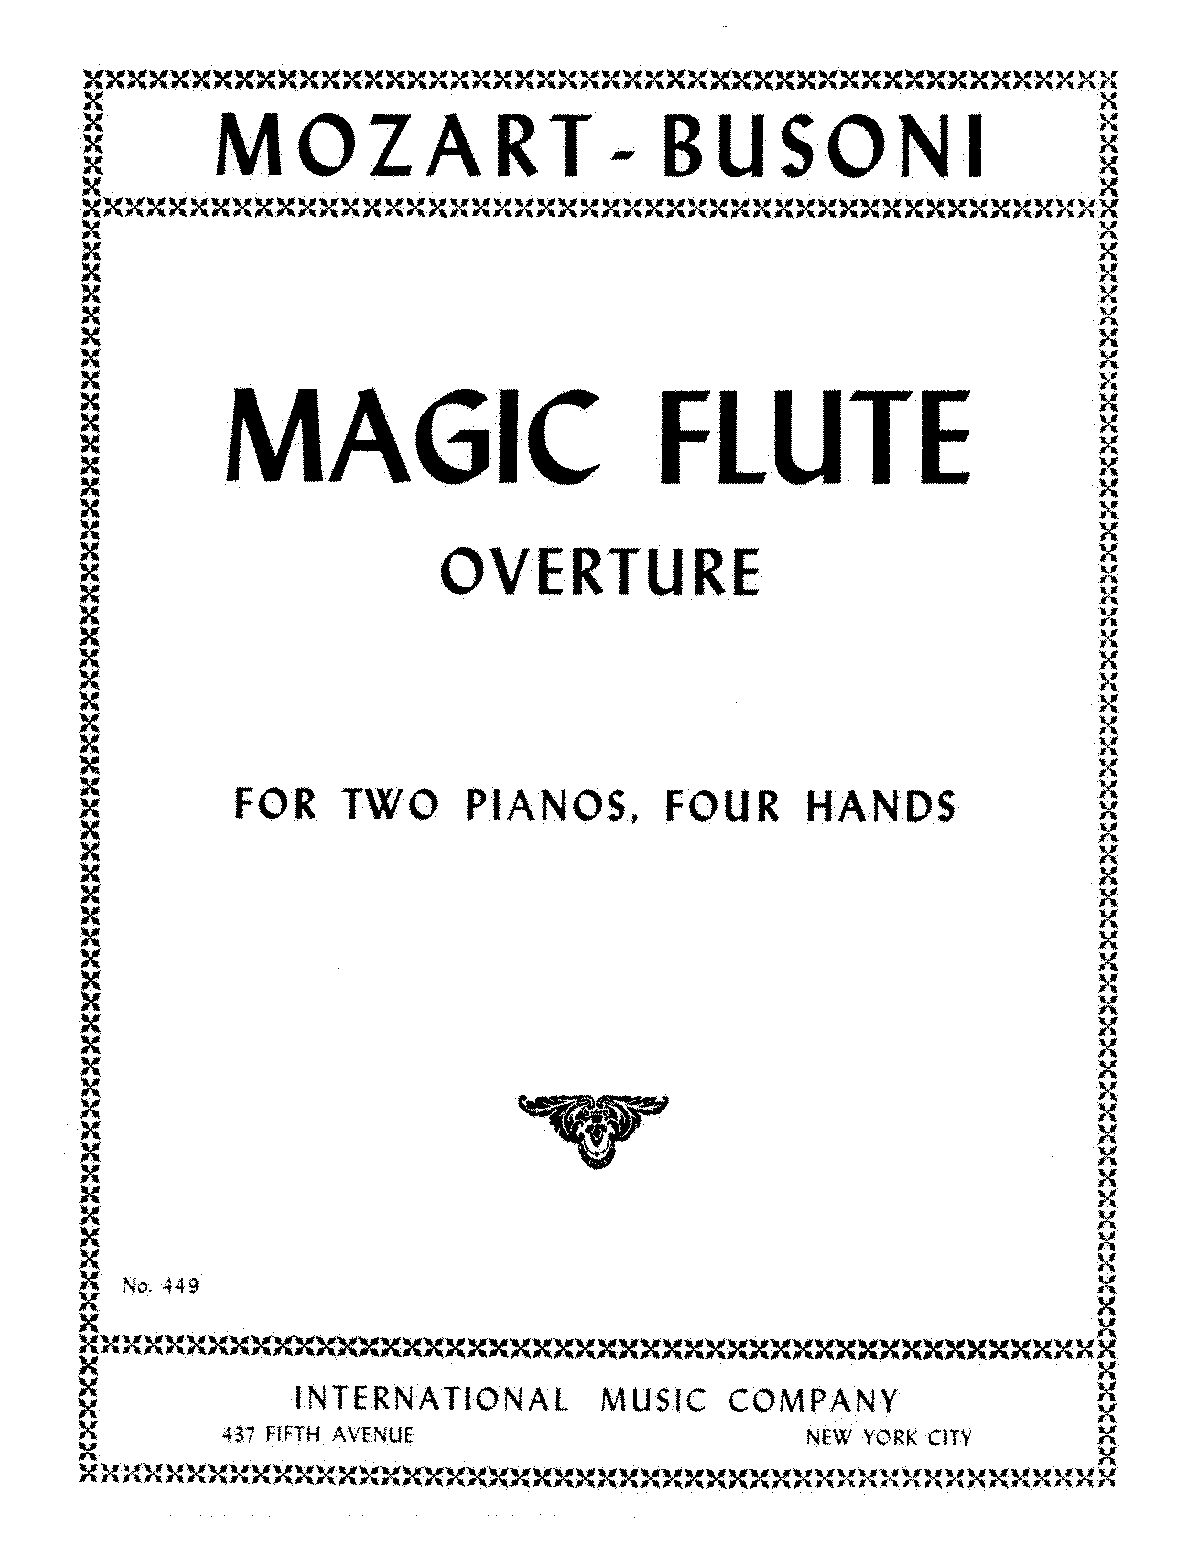 PMLP20137-Busoni - Mozart's The Magic Flute Overture, (Duet).pdf